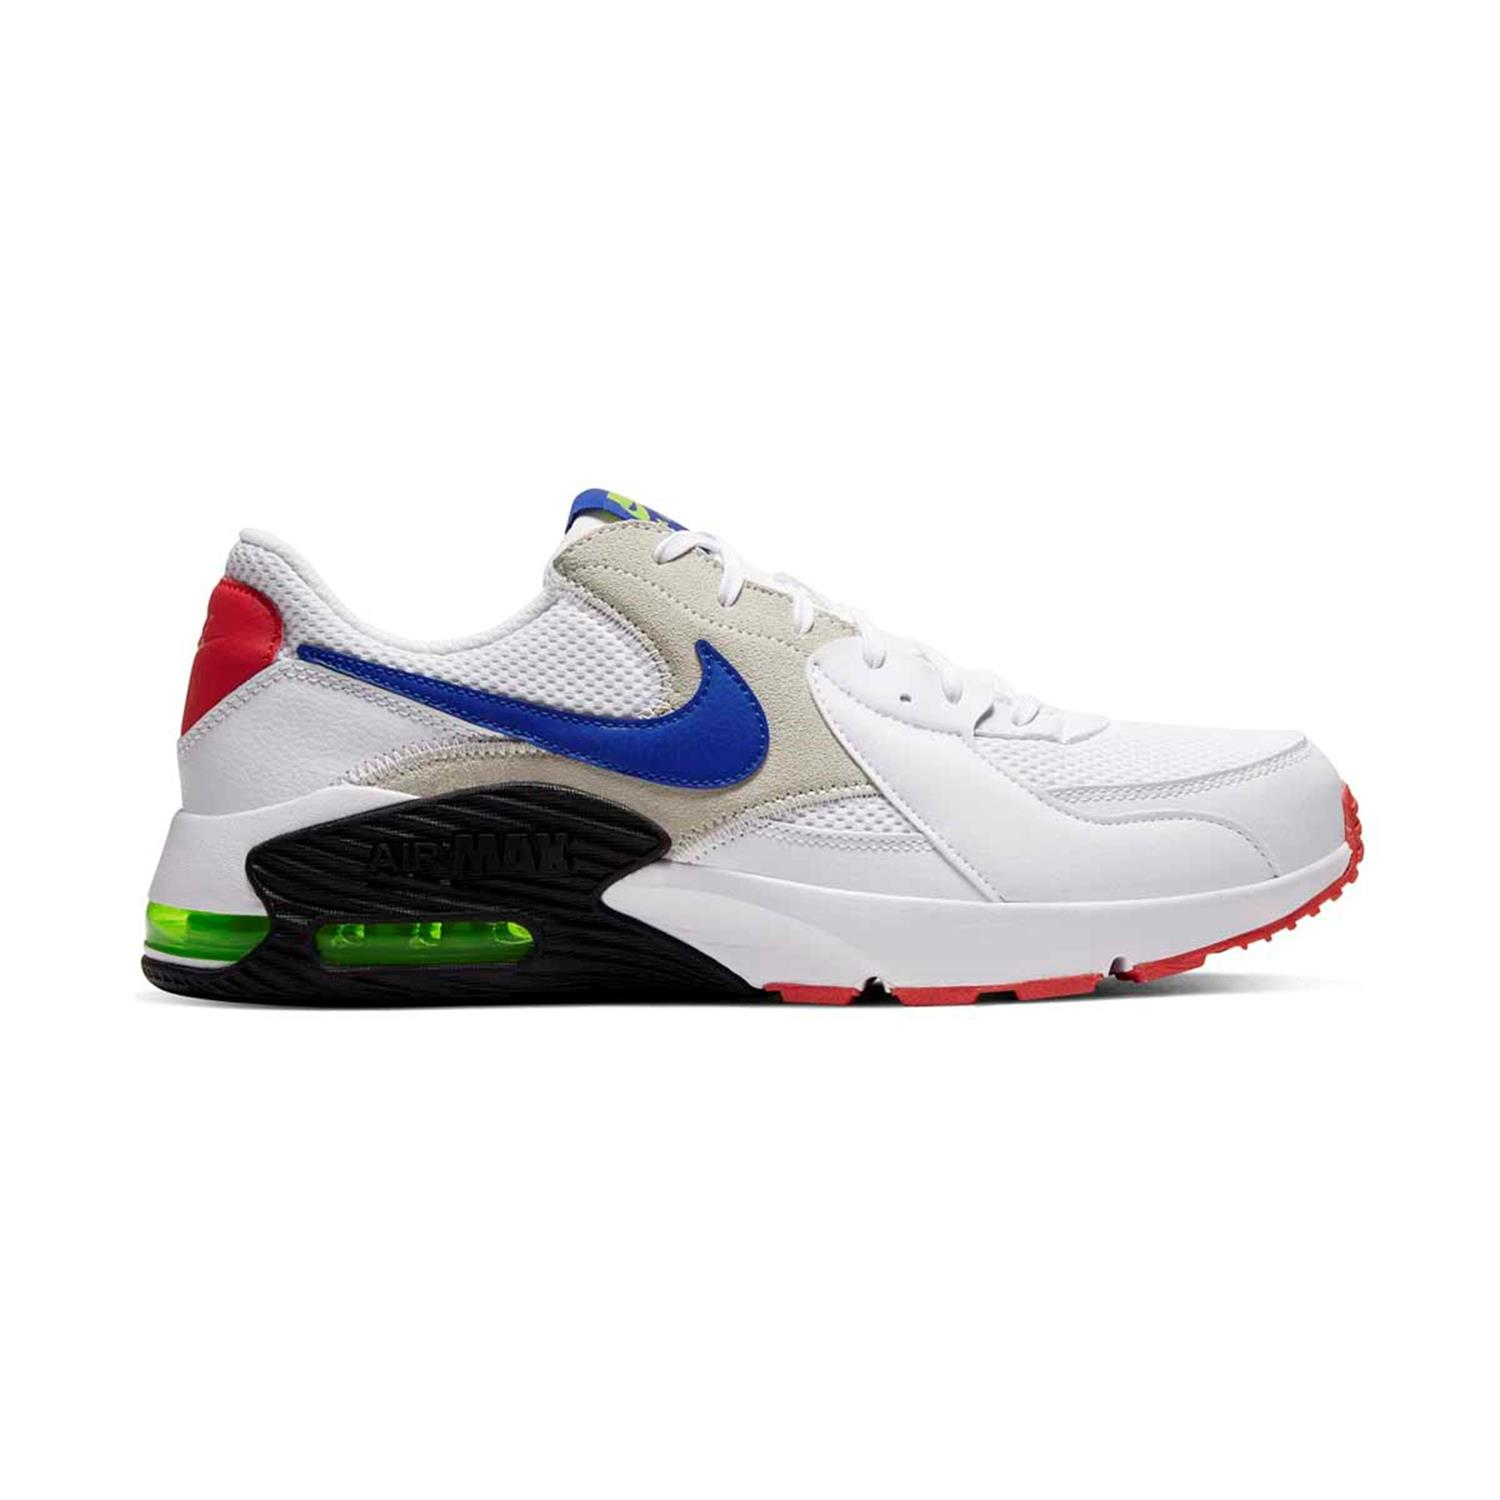 Nike Air Max Excee heren sneakers wit